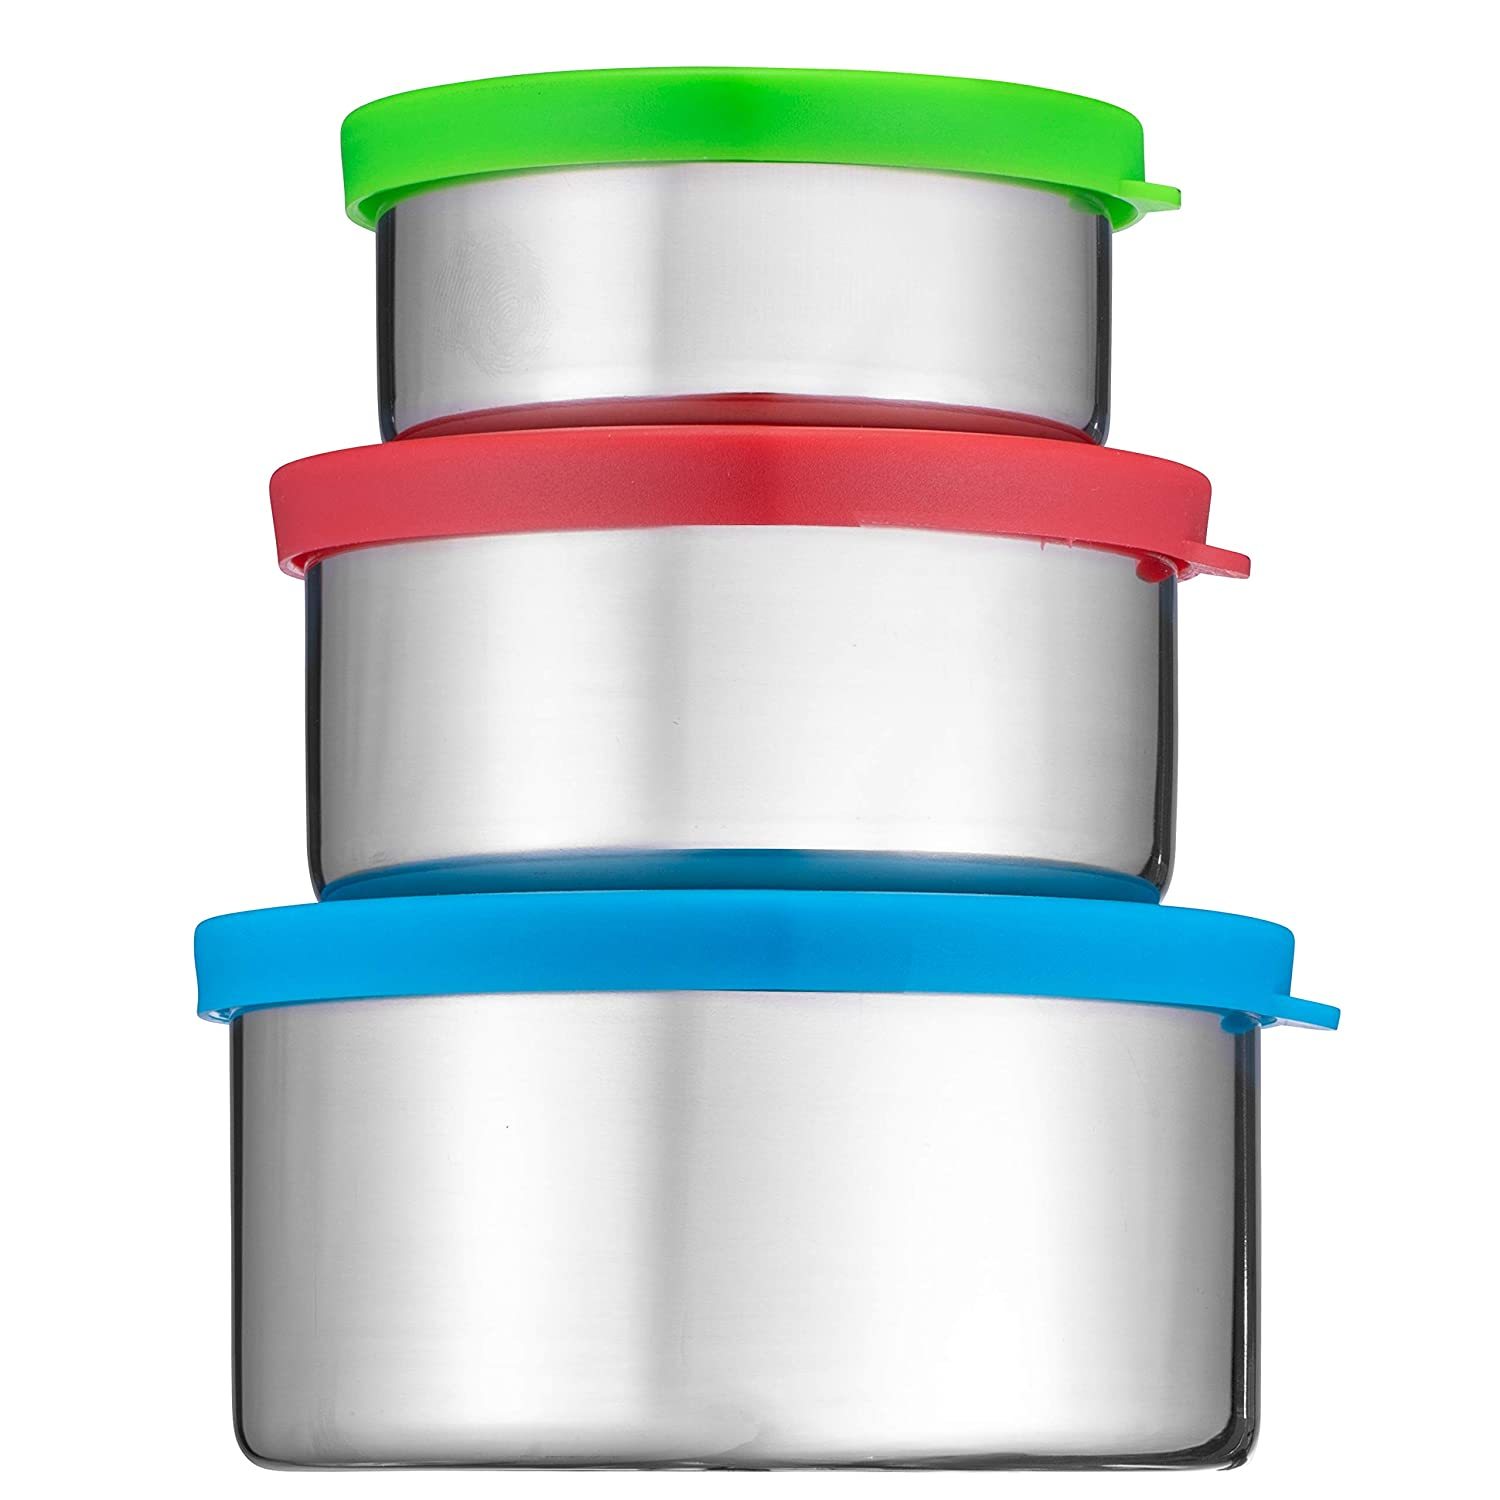 Bruntmor Trio Nesting 18/8 Stainless Steel Food Containers with Leak-Proof Lids, Set of 3